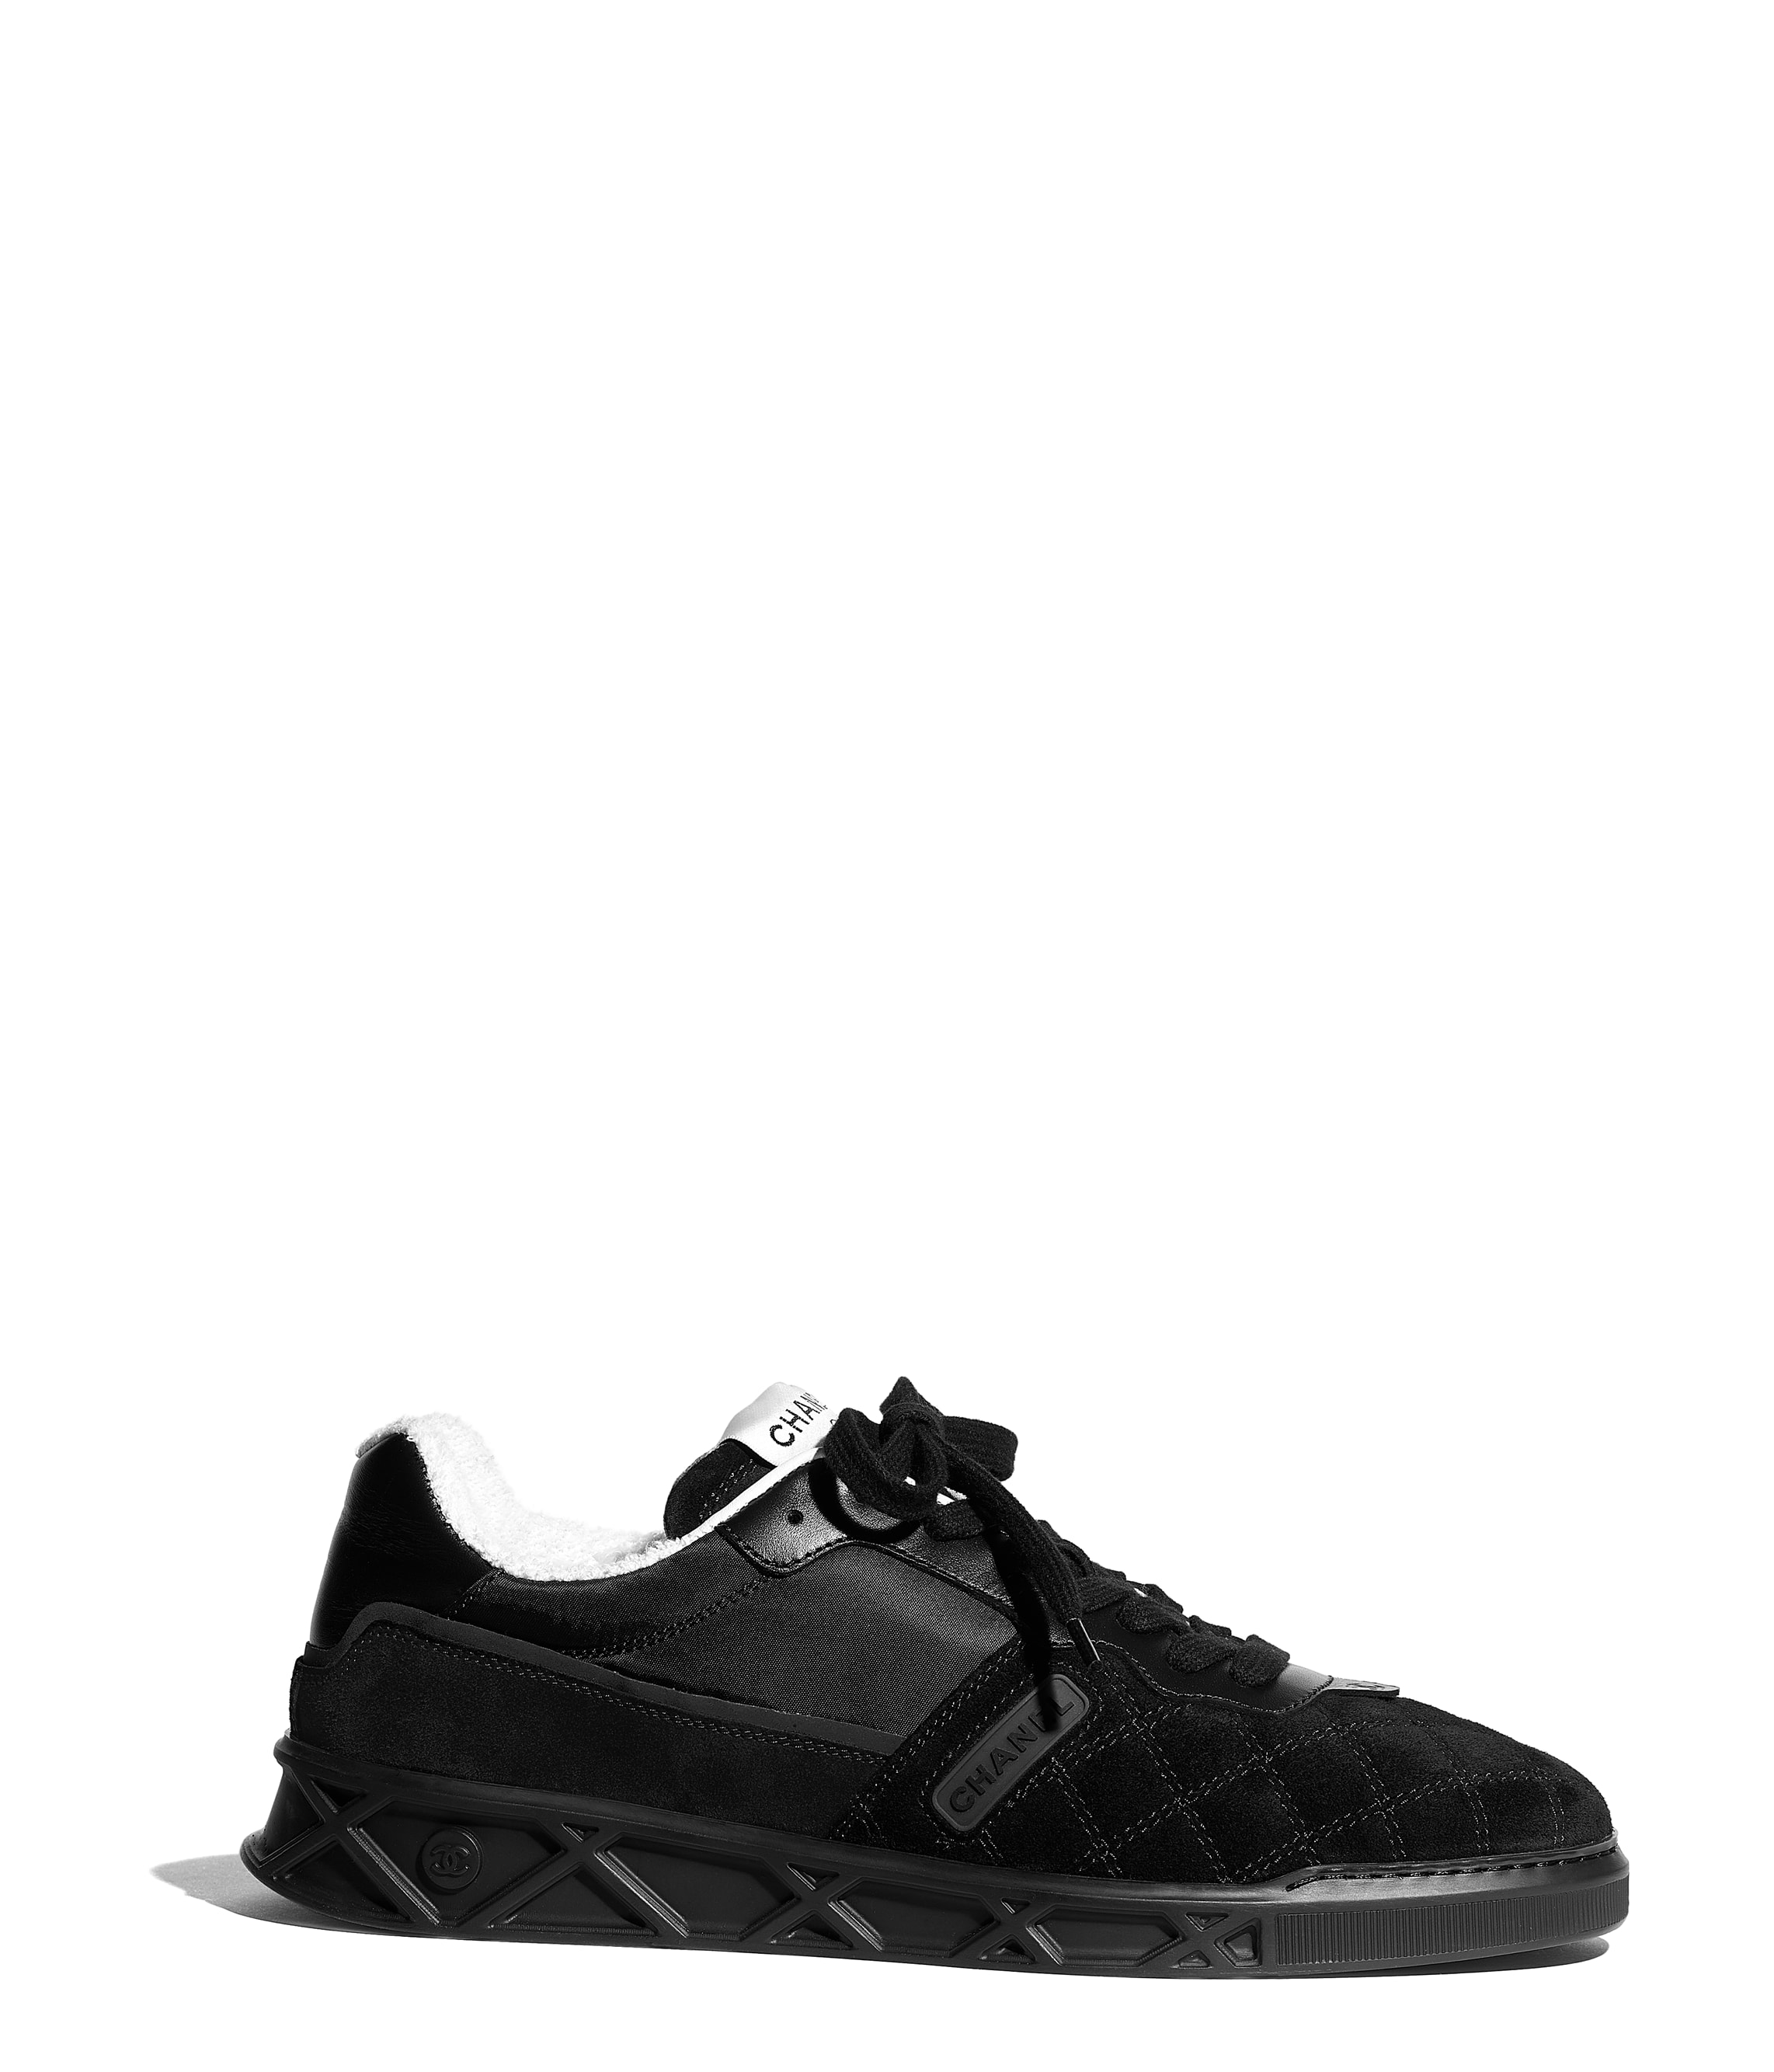 purchase cheap 35acc d474e Sneakers - Shoes - CHANEL